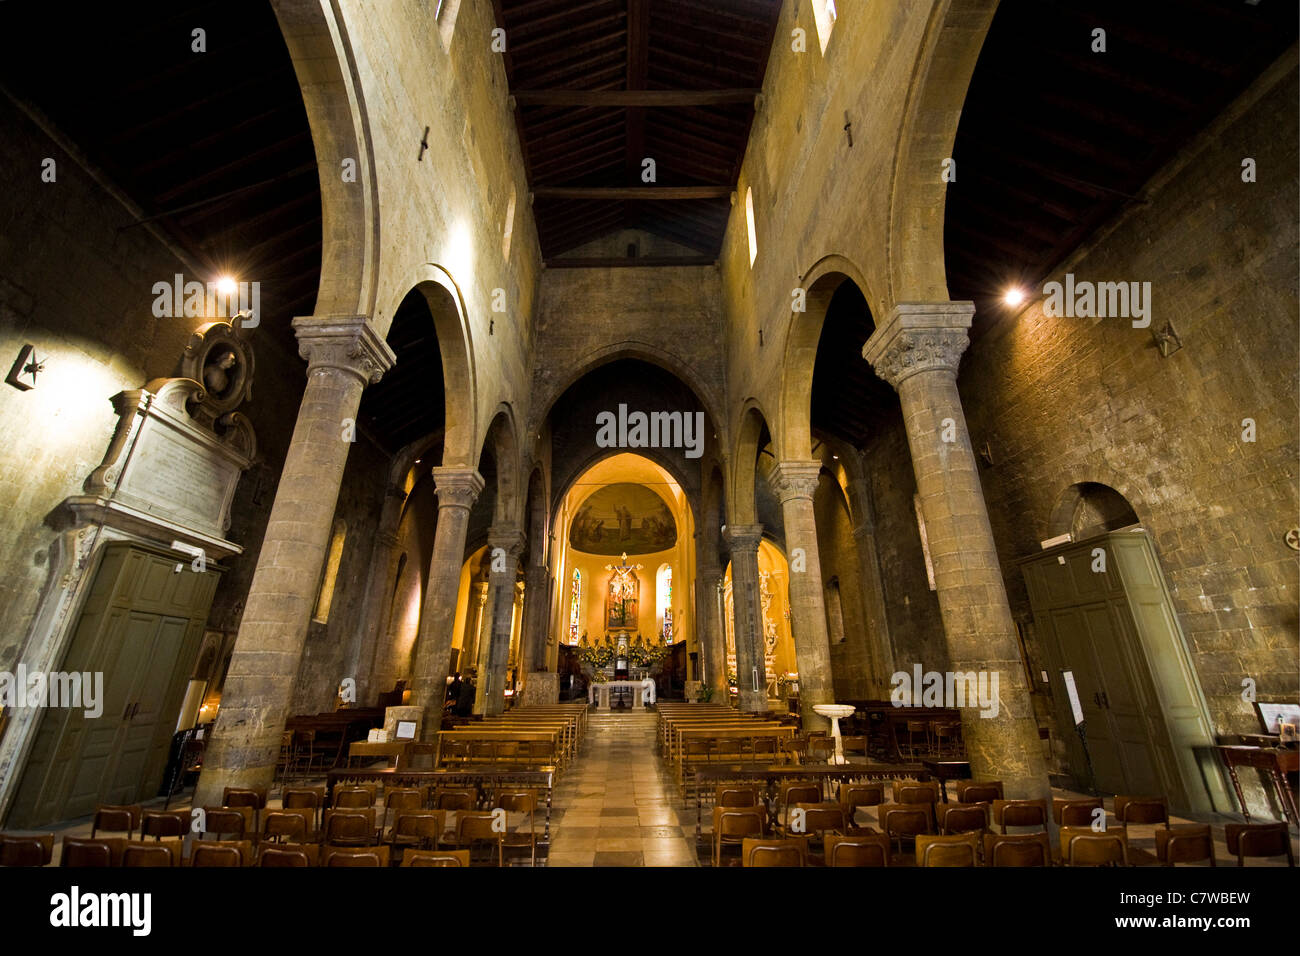 Italy, Liguria, Sanremo, San Siro Church interior Stock Photo